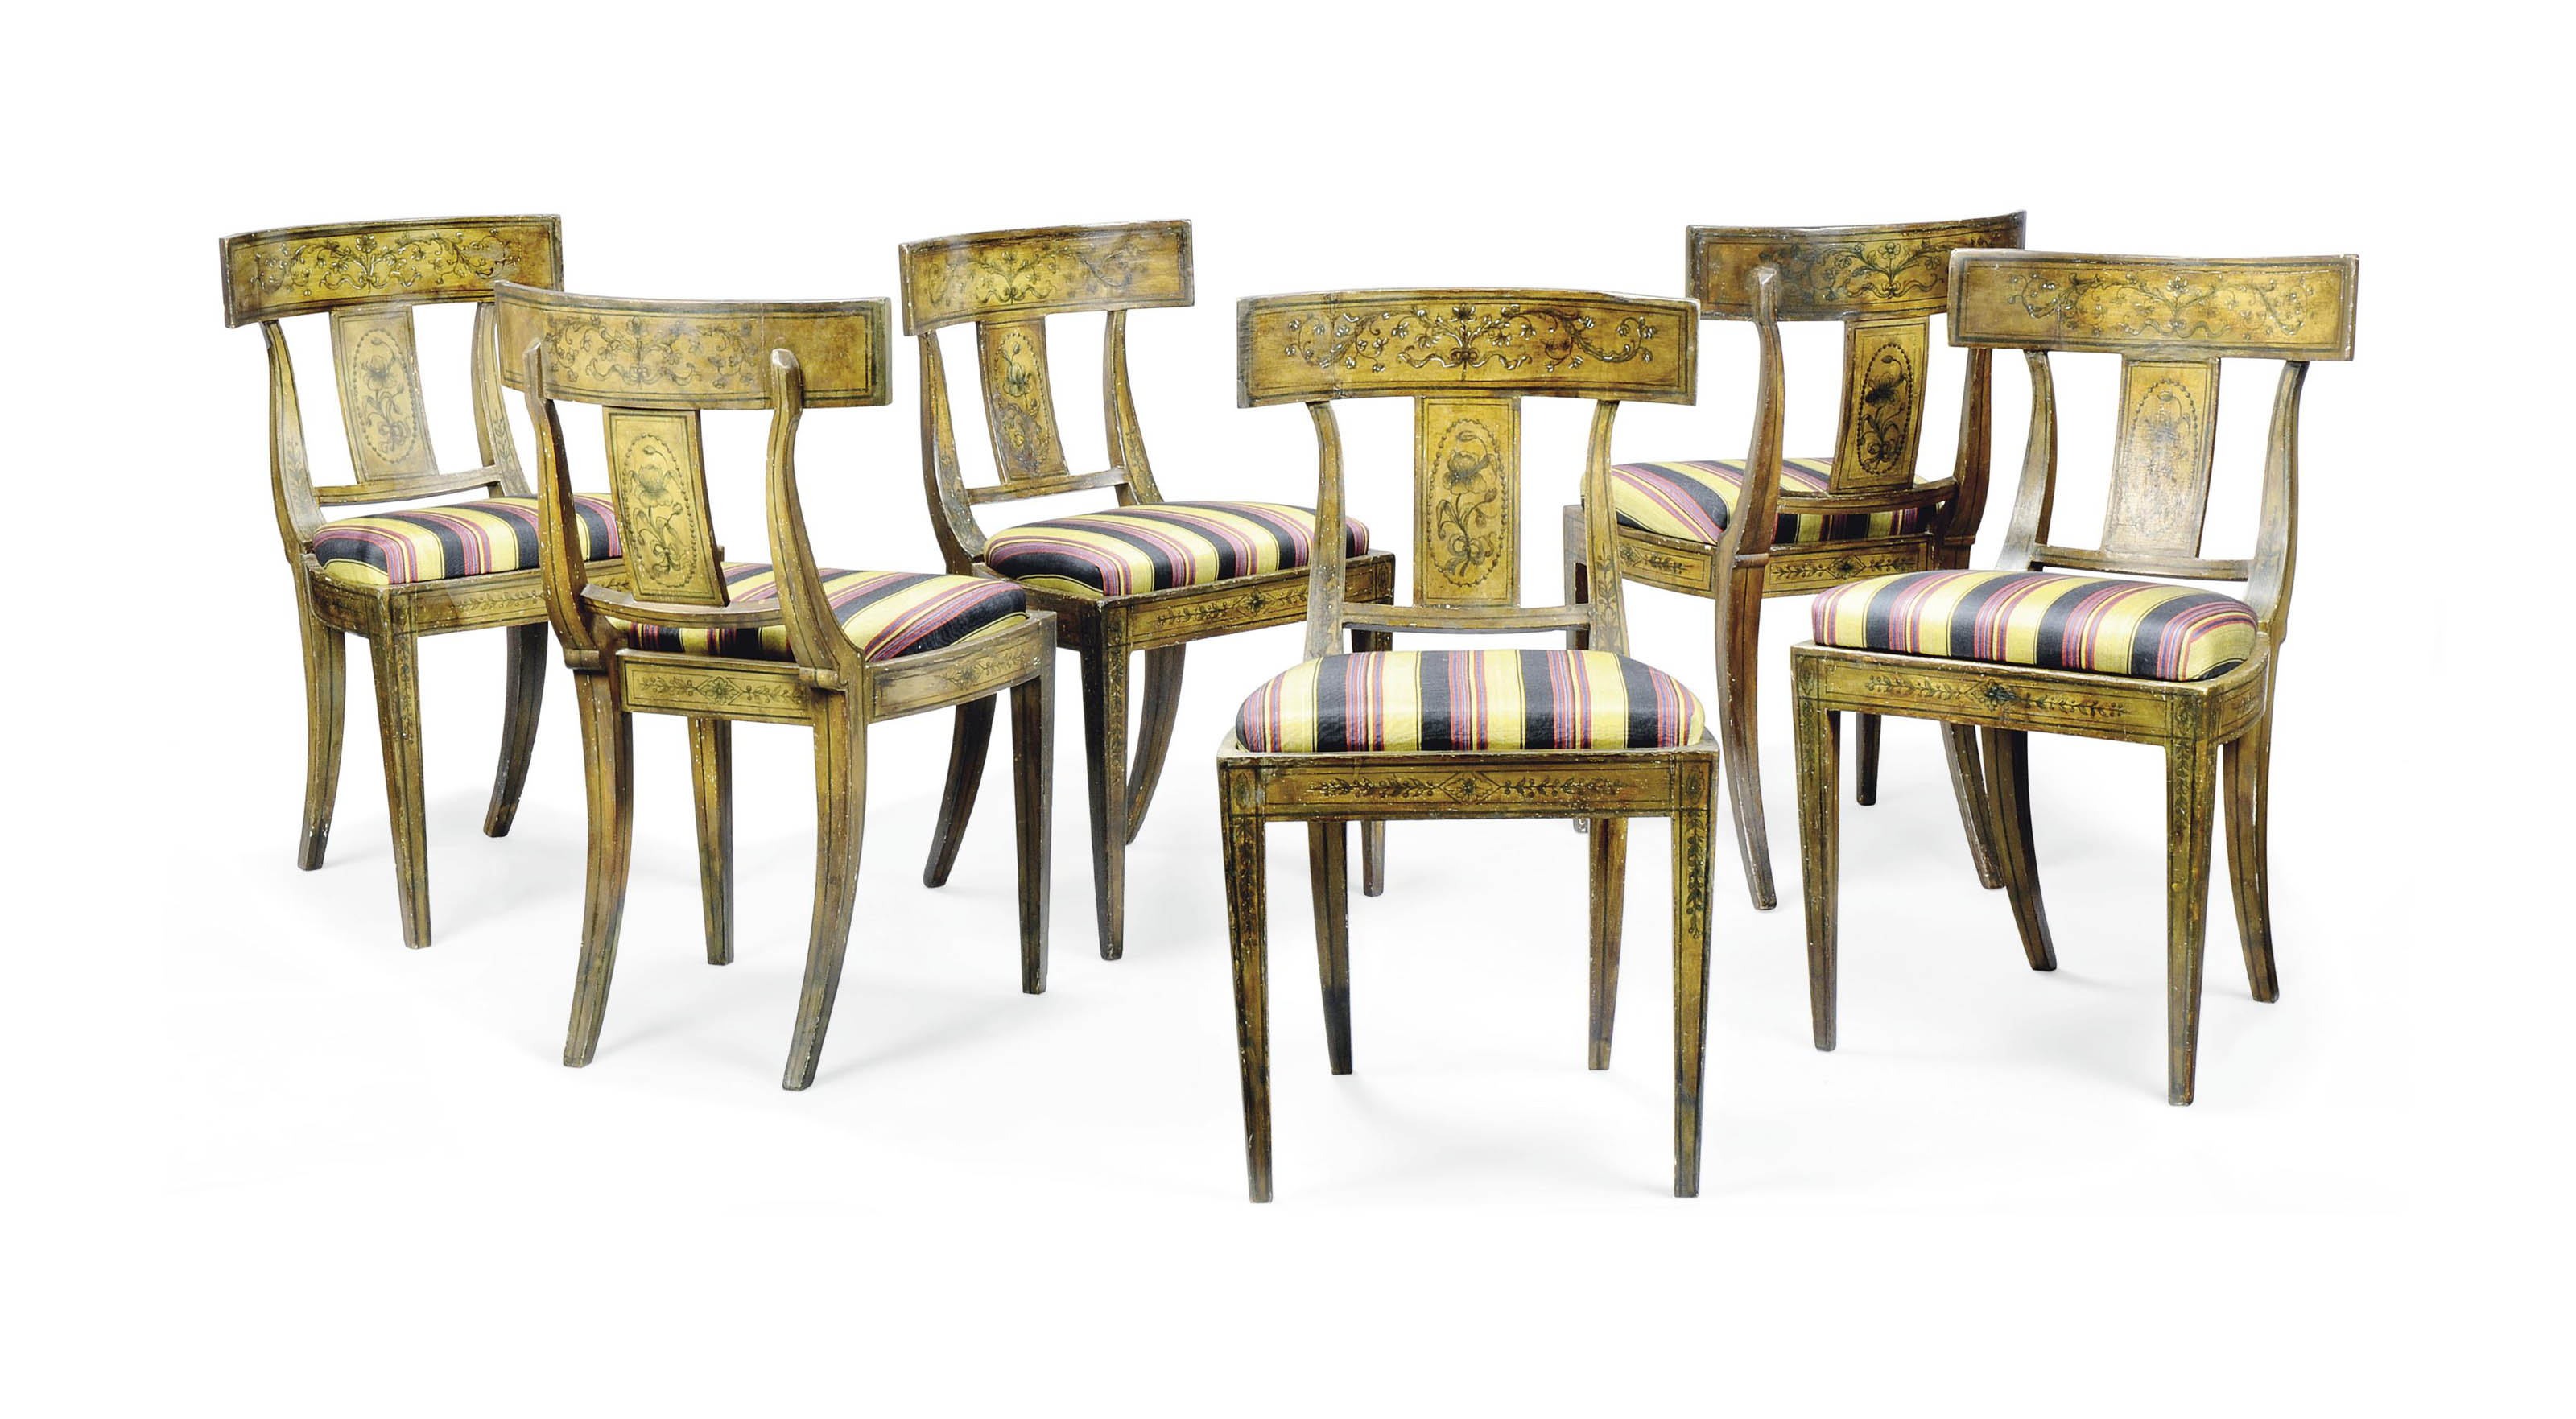 A SET OF SIX NORTH ITALIAN POLYCHROME-PAINTED DINING CHAIRS